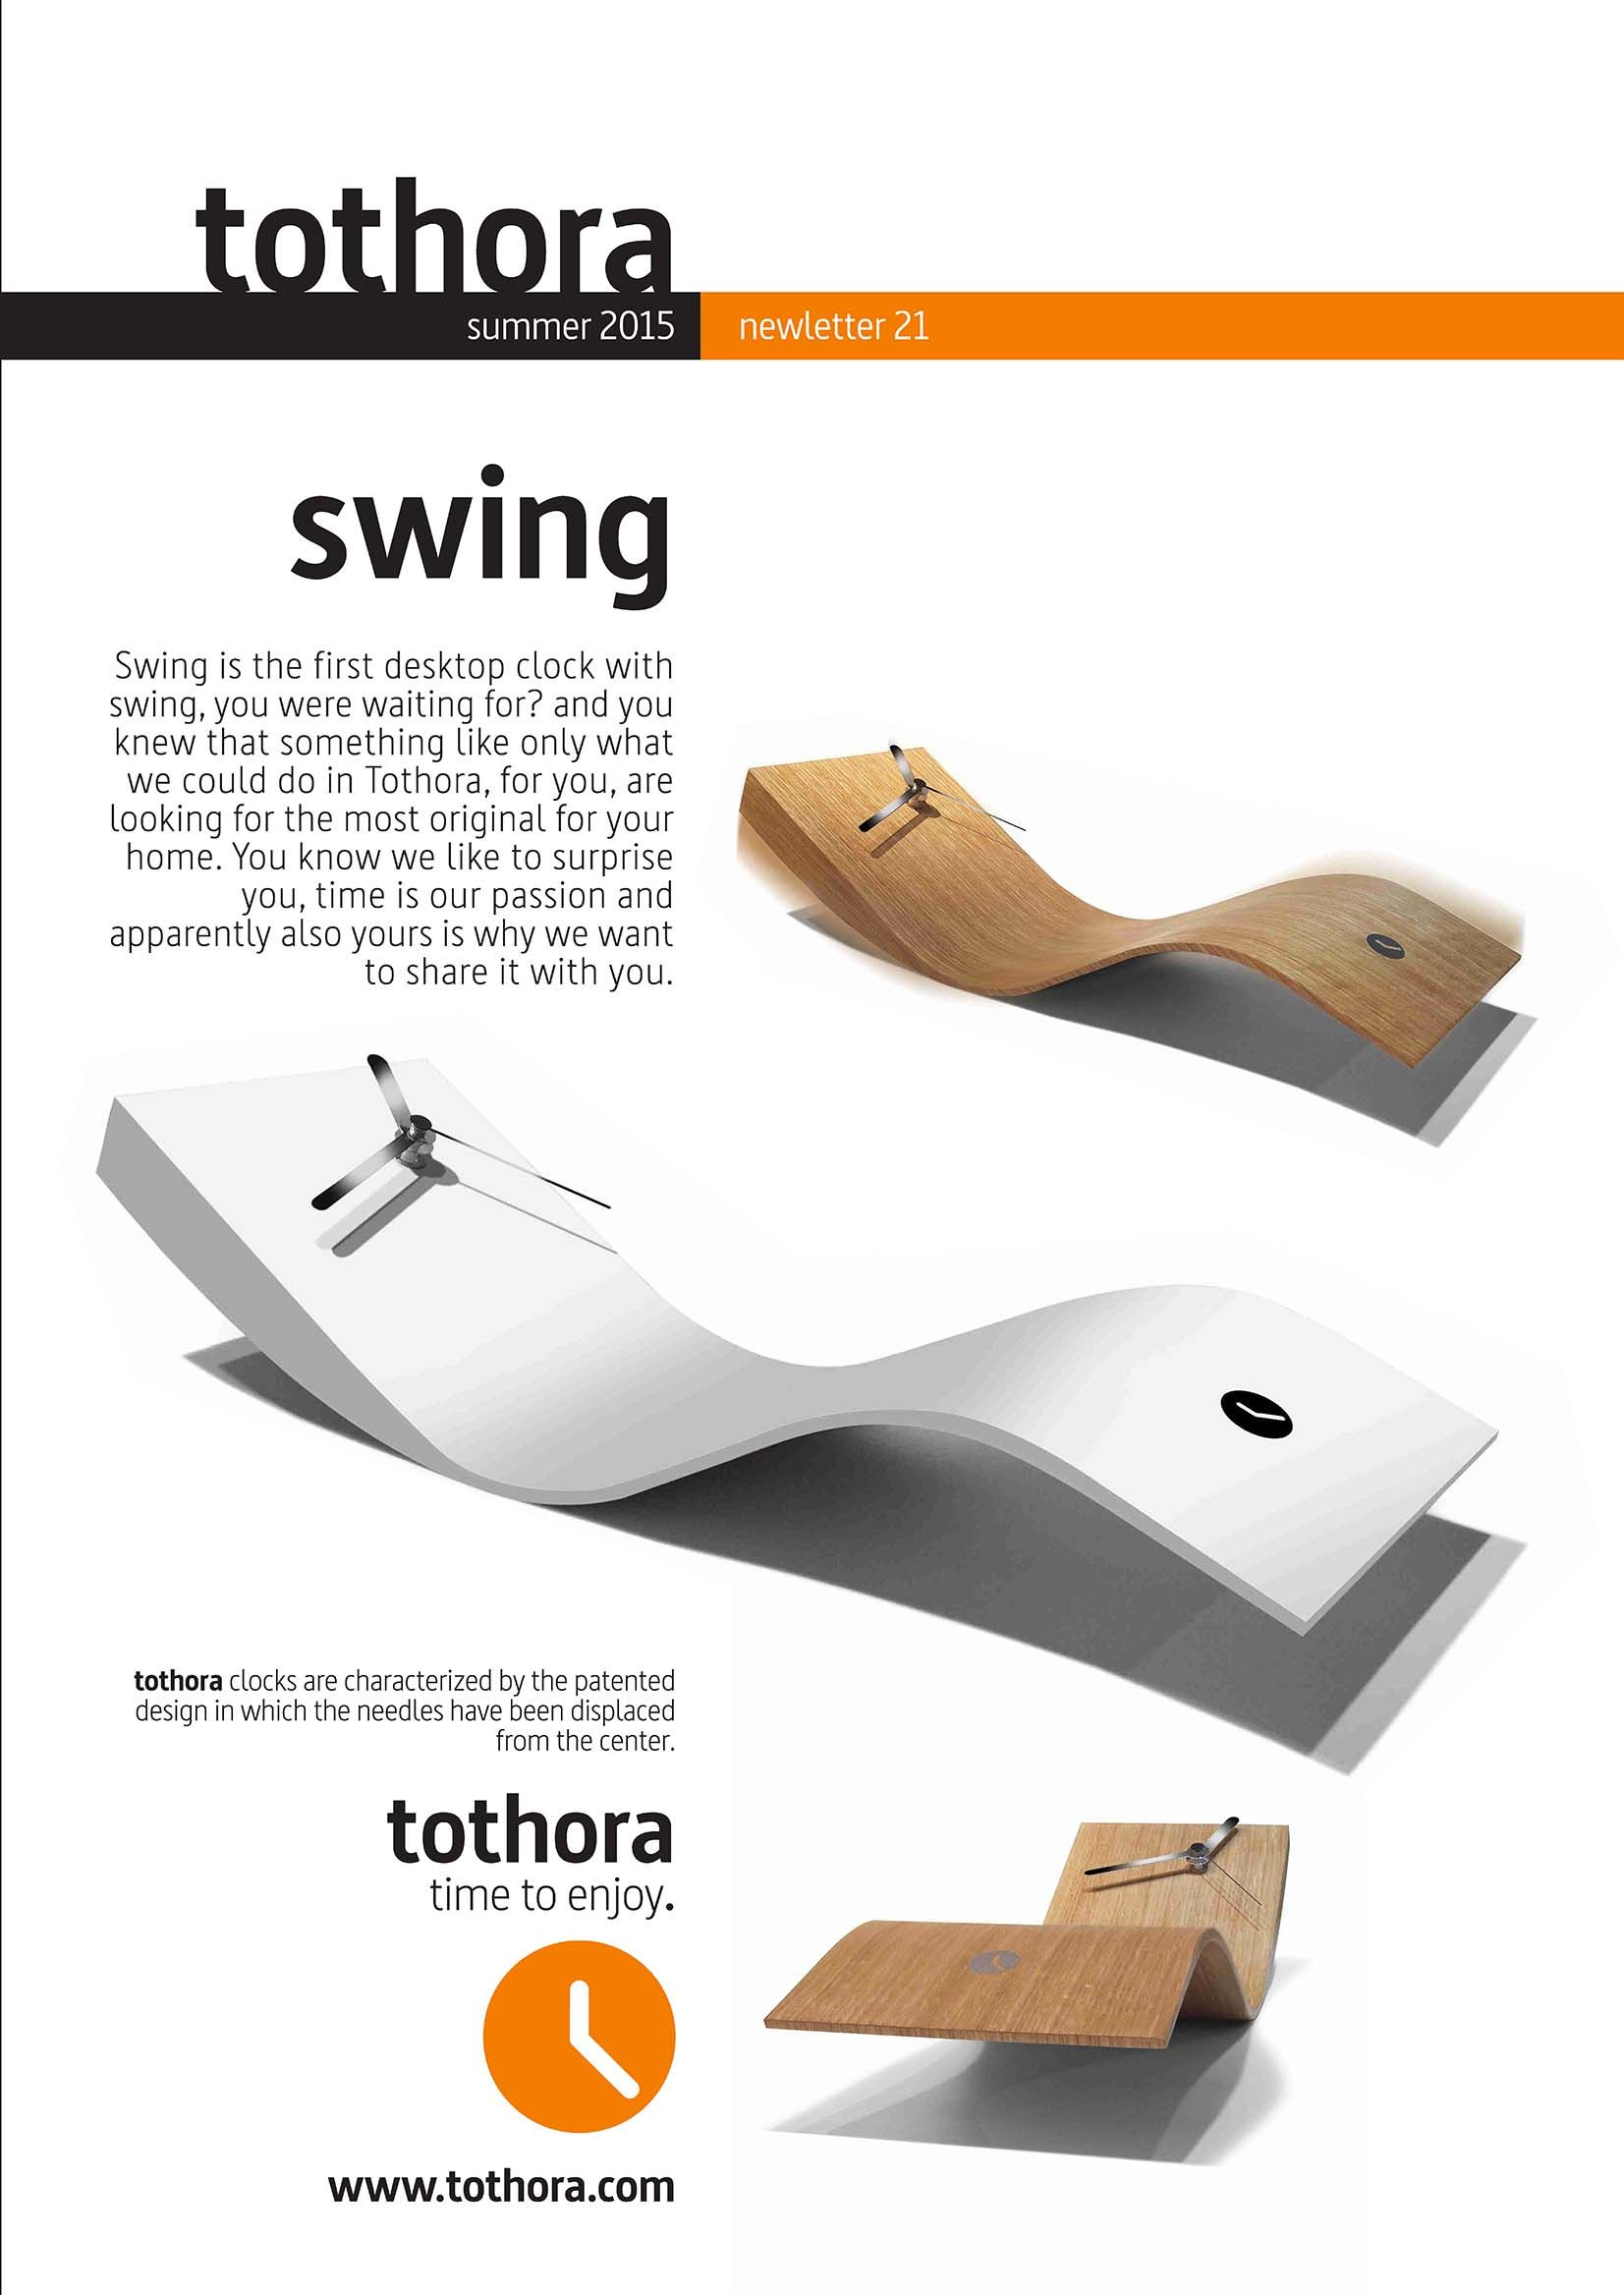 #Swing by #Tothora #TimeSculptures